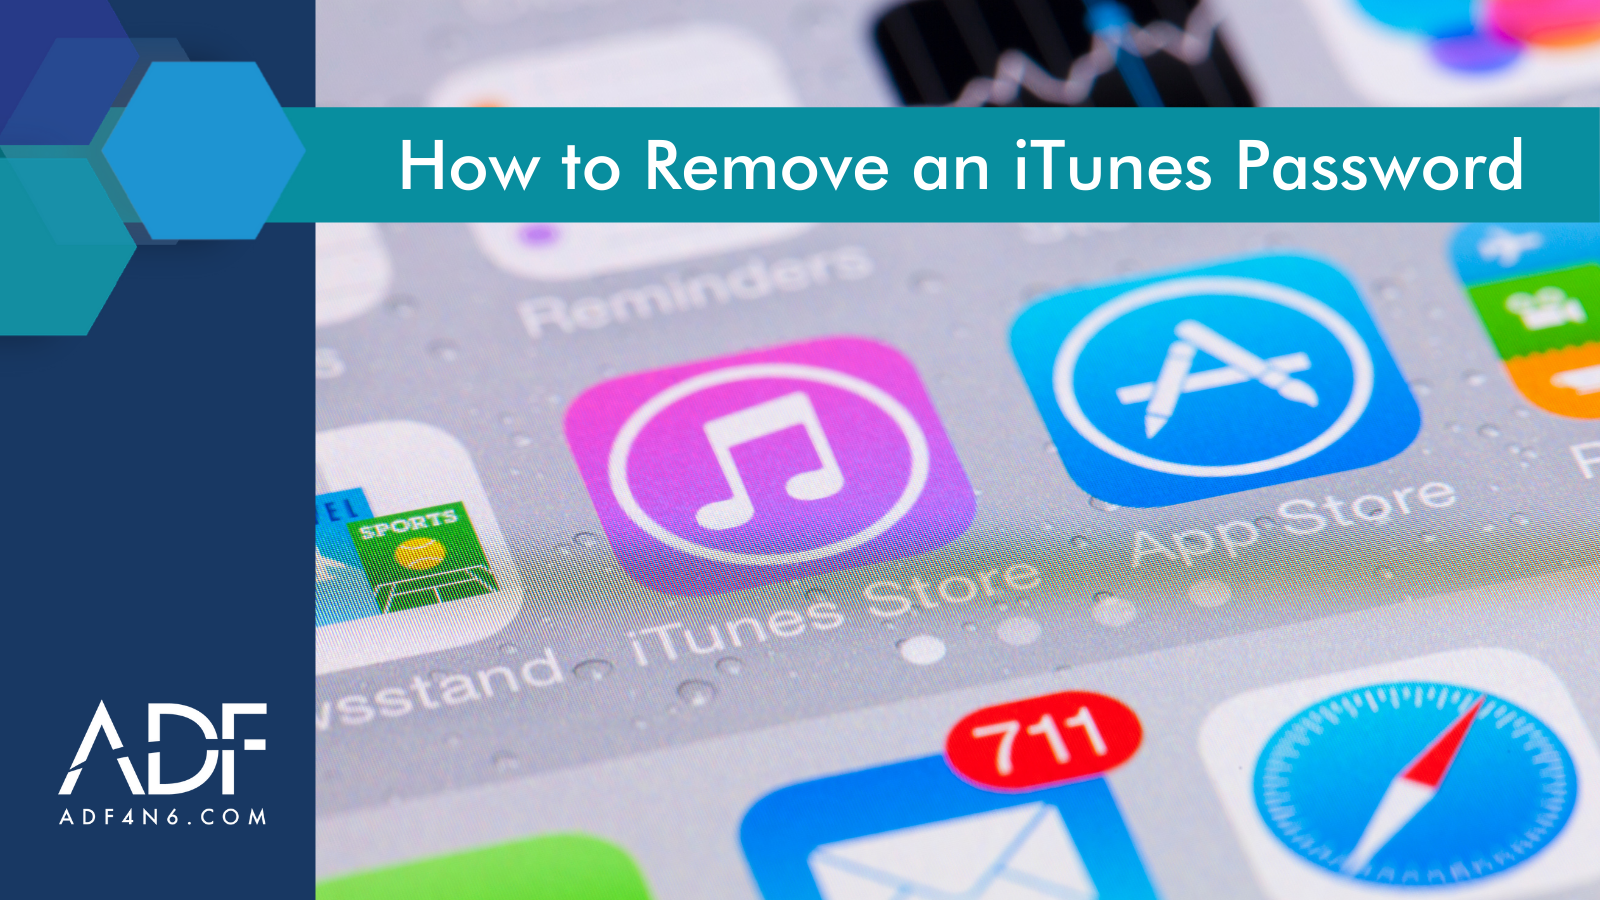 Remove an iTunes Password set in ADF Digital Forensics Tools